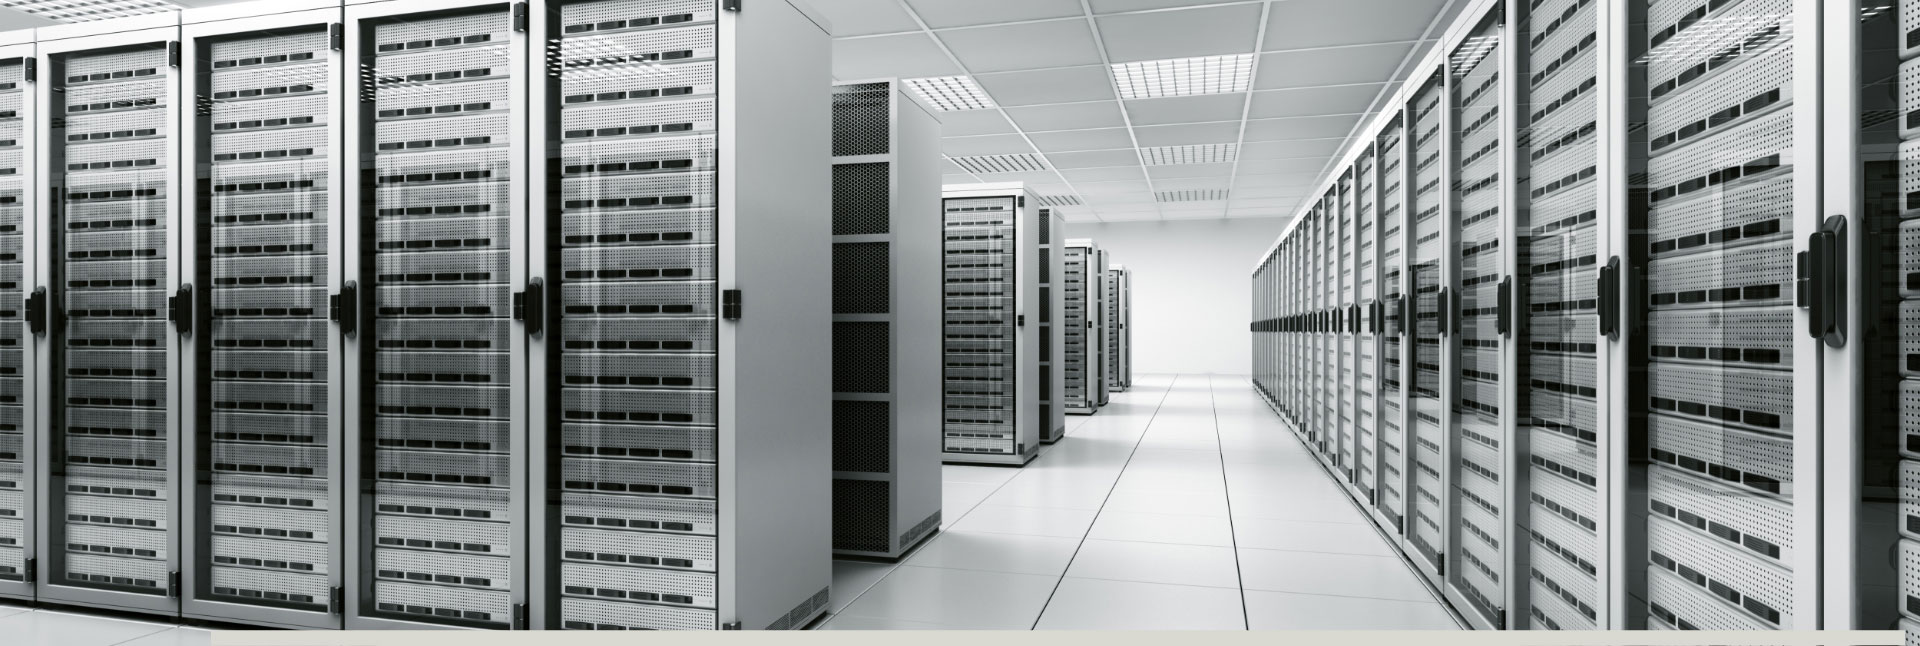 View inside a data centre